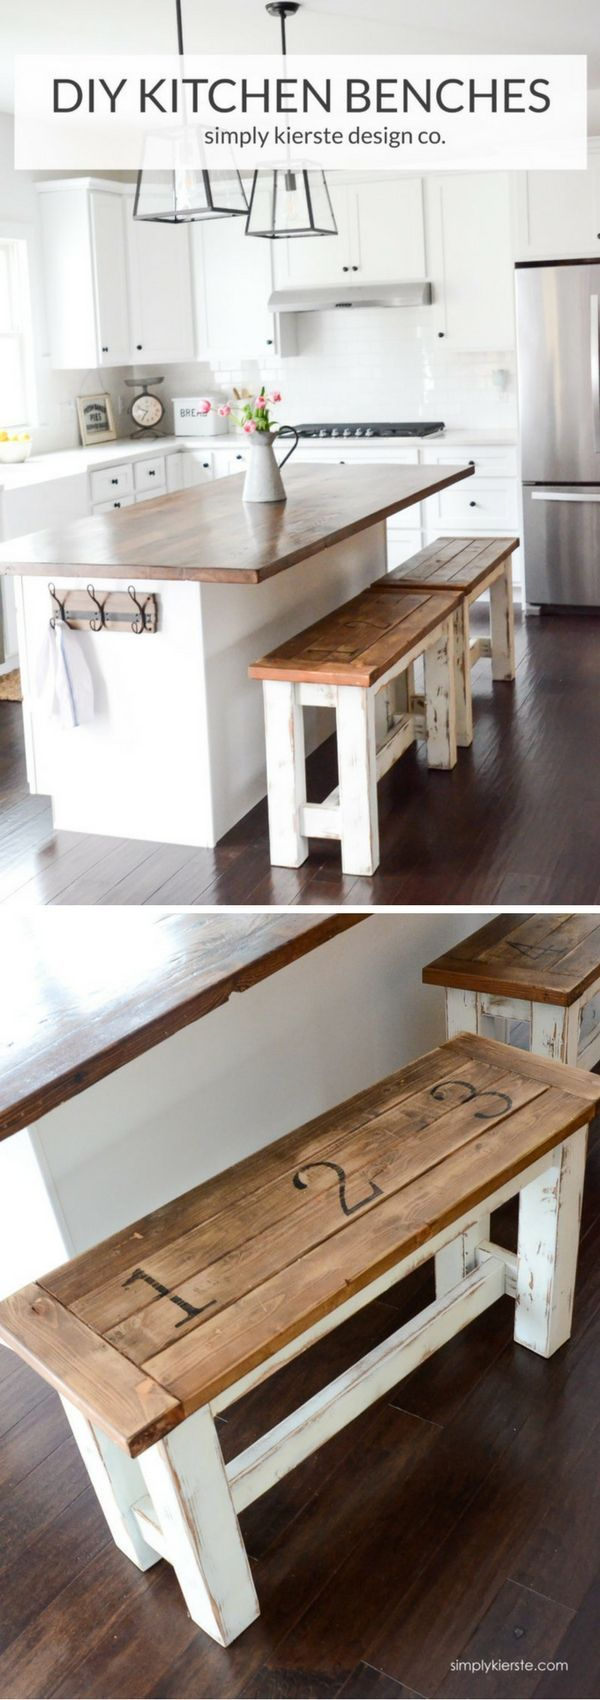 Check out the tutorial on how to make a DIY kitchen bench ...